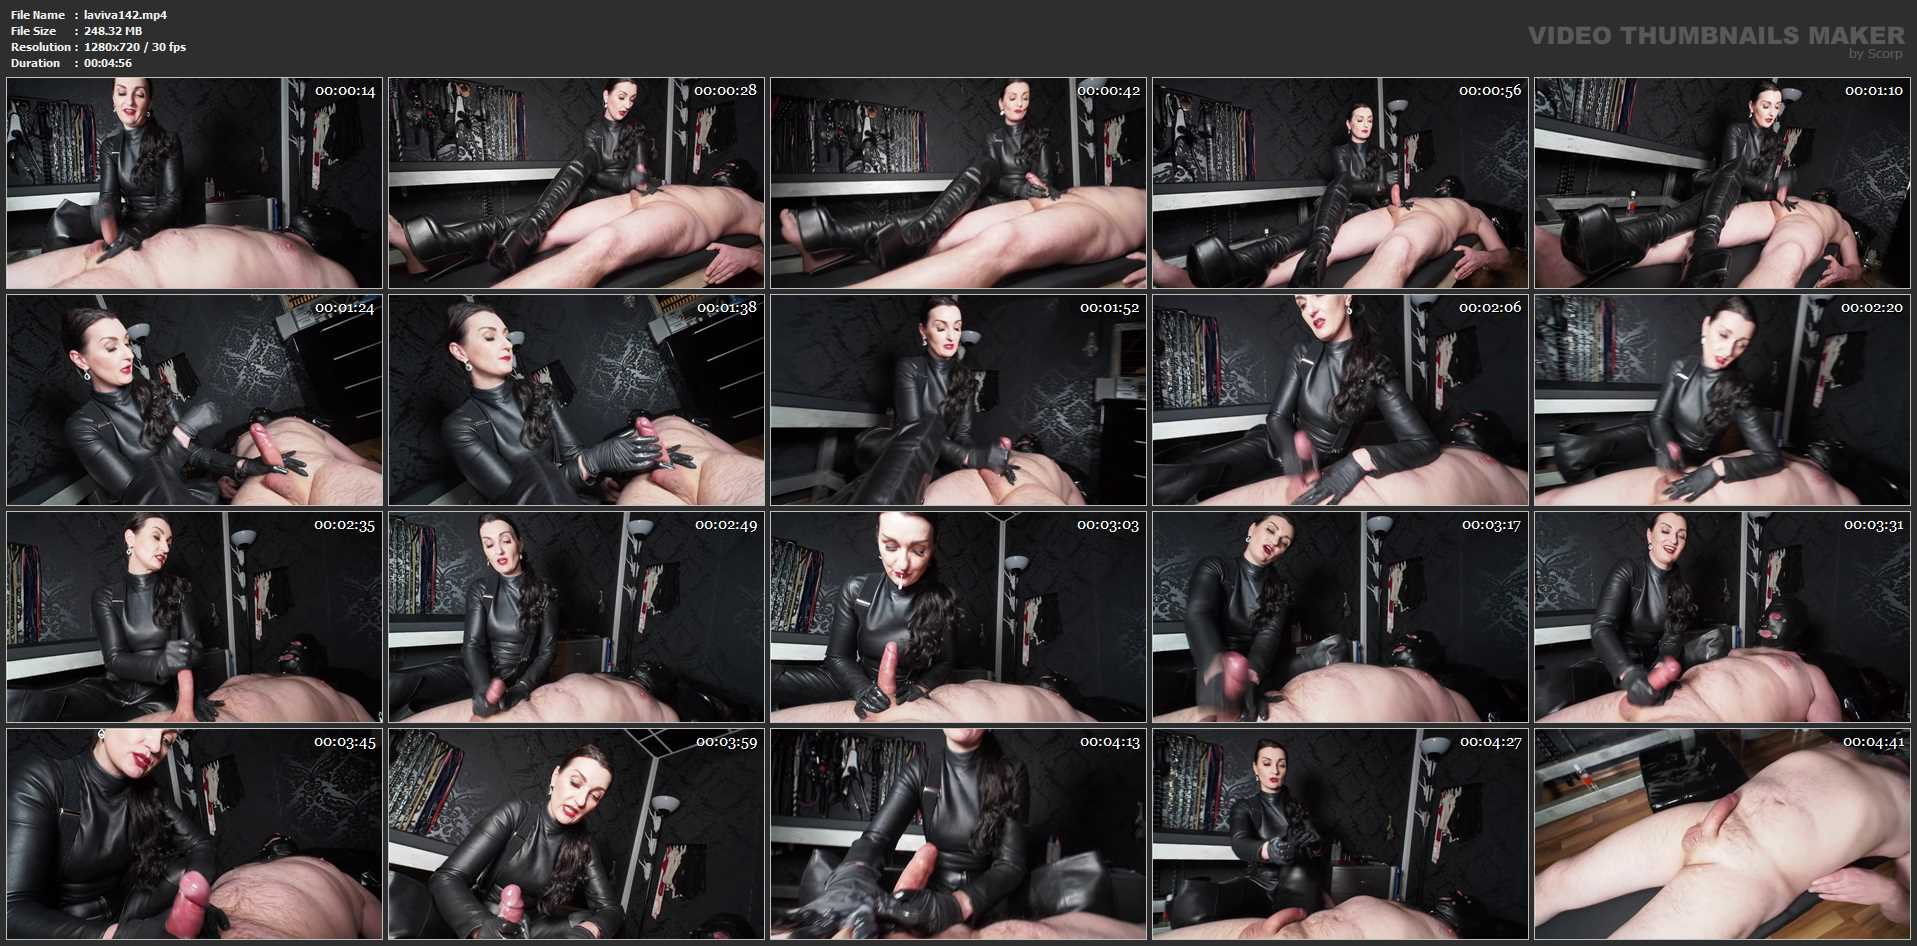 Lady Victoria Valente In Scene: The Made Handjob - LADYVICTORIAVALENTE / REAL GERMAN MISTRESS - HD/720p/MP4